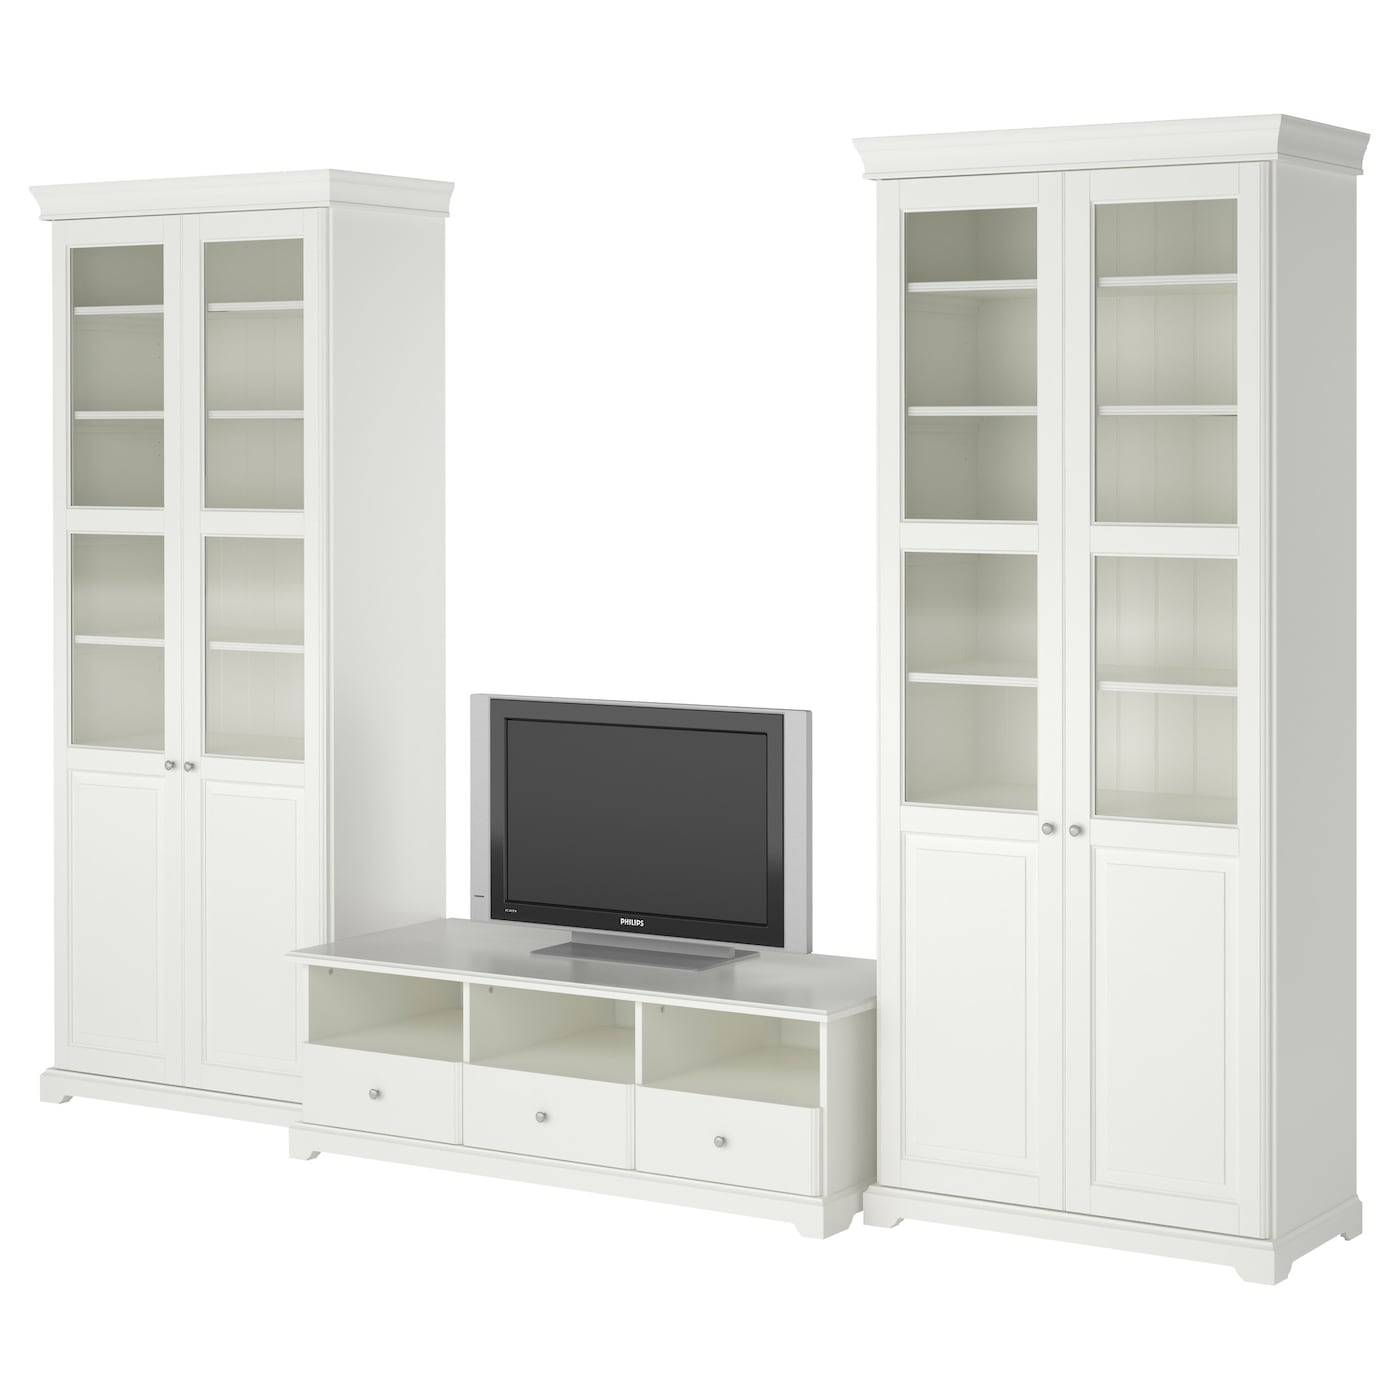 liatorp tv storage combination white 331x214 cm ikea. Black Bedroom Furniture Sets. Home Design Ideas